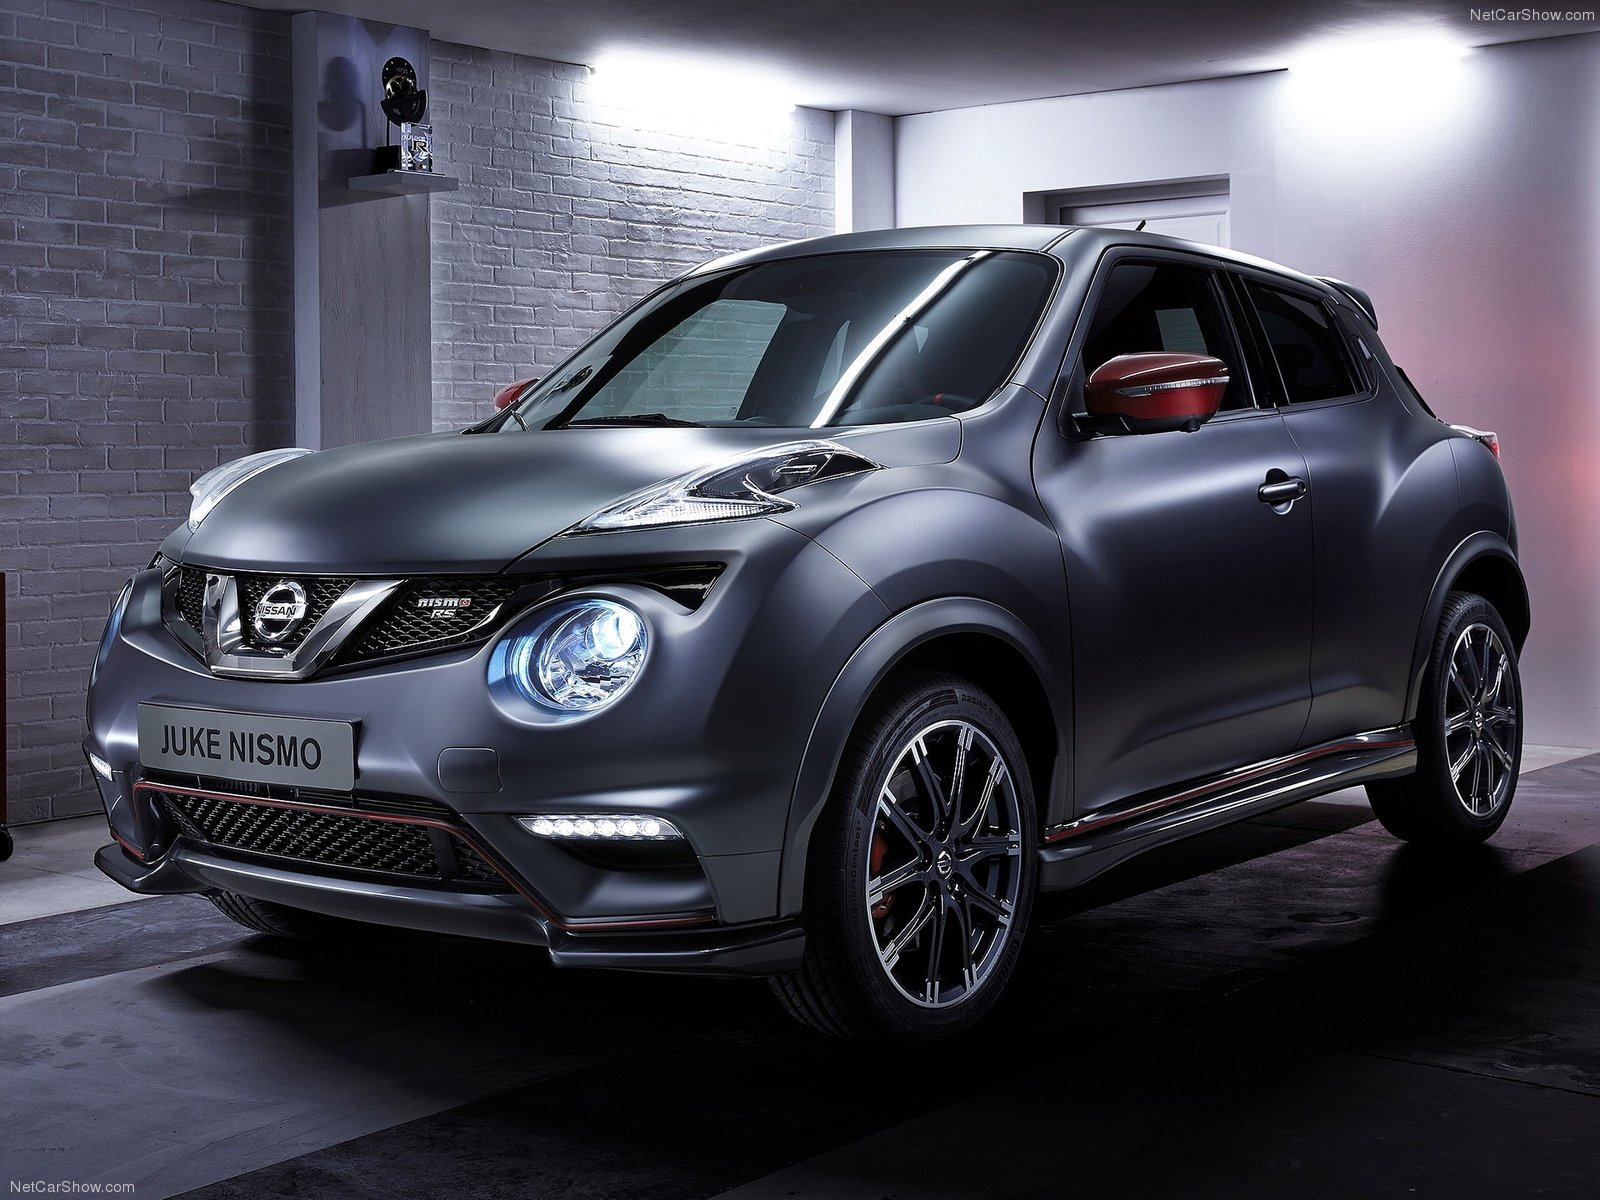 Nissan Juke Nismo RS photo 111219